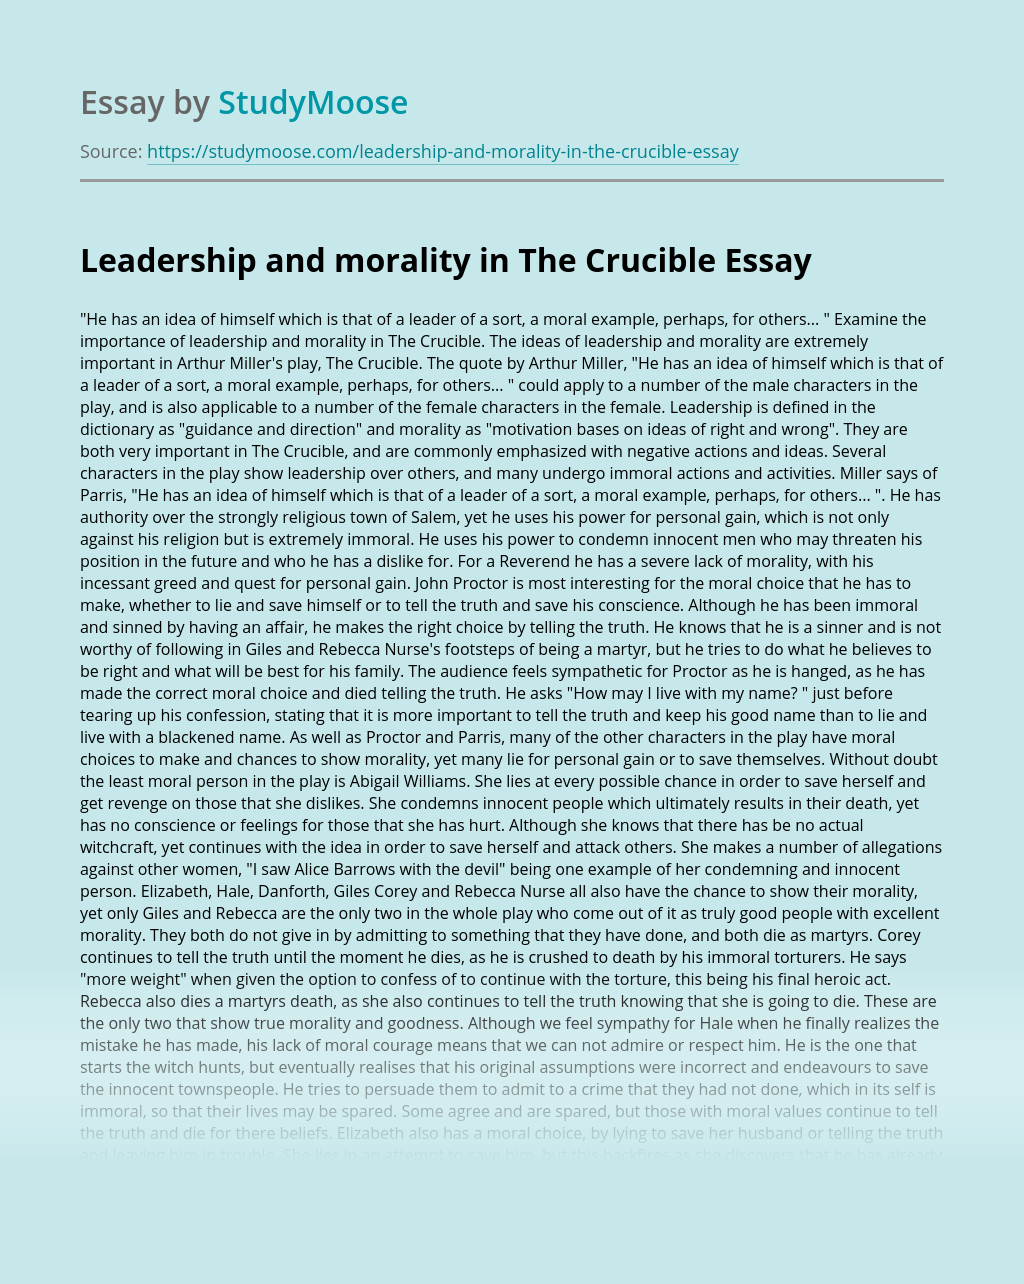 Leadership and morality in The Crucible